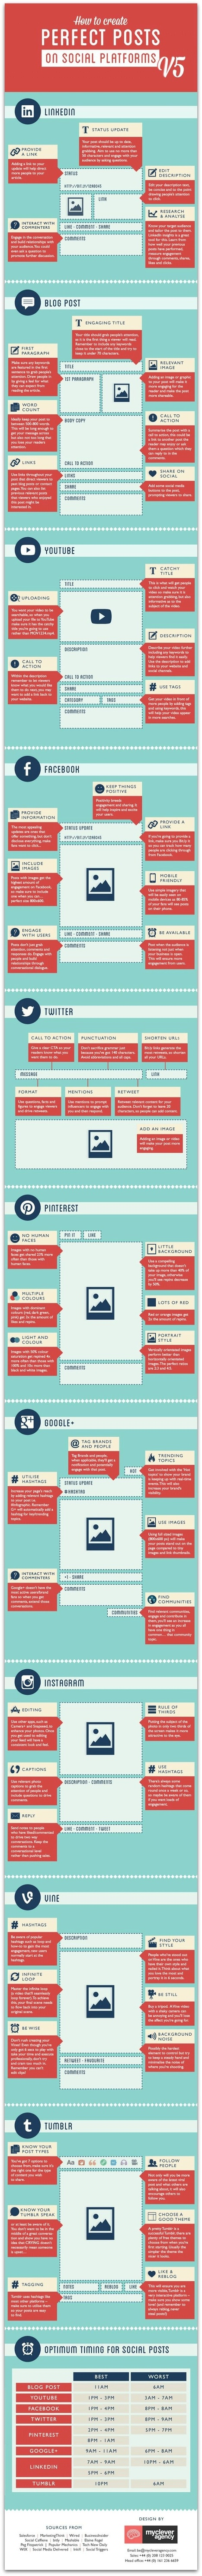 Infographic: How to create engaging social media posts | MarketingHits | Scoop.it